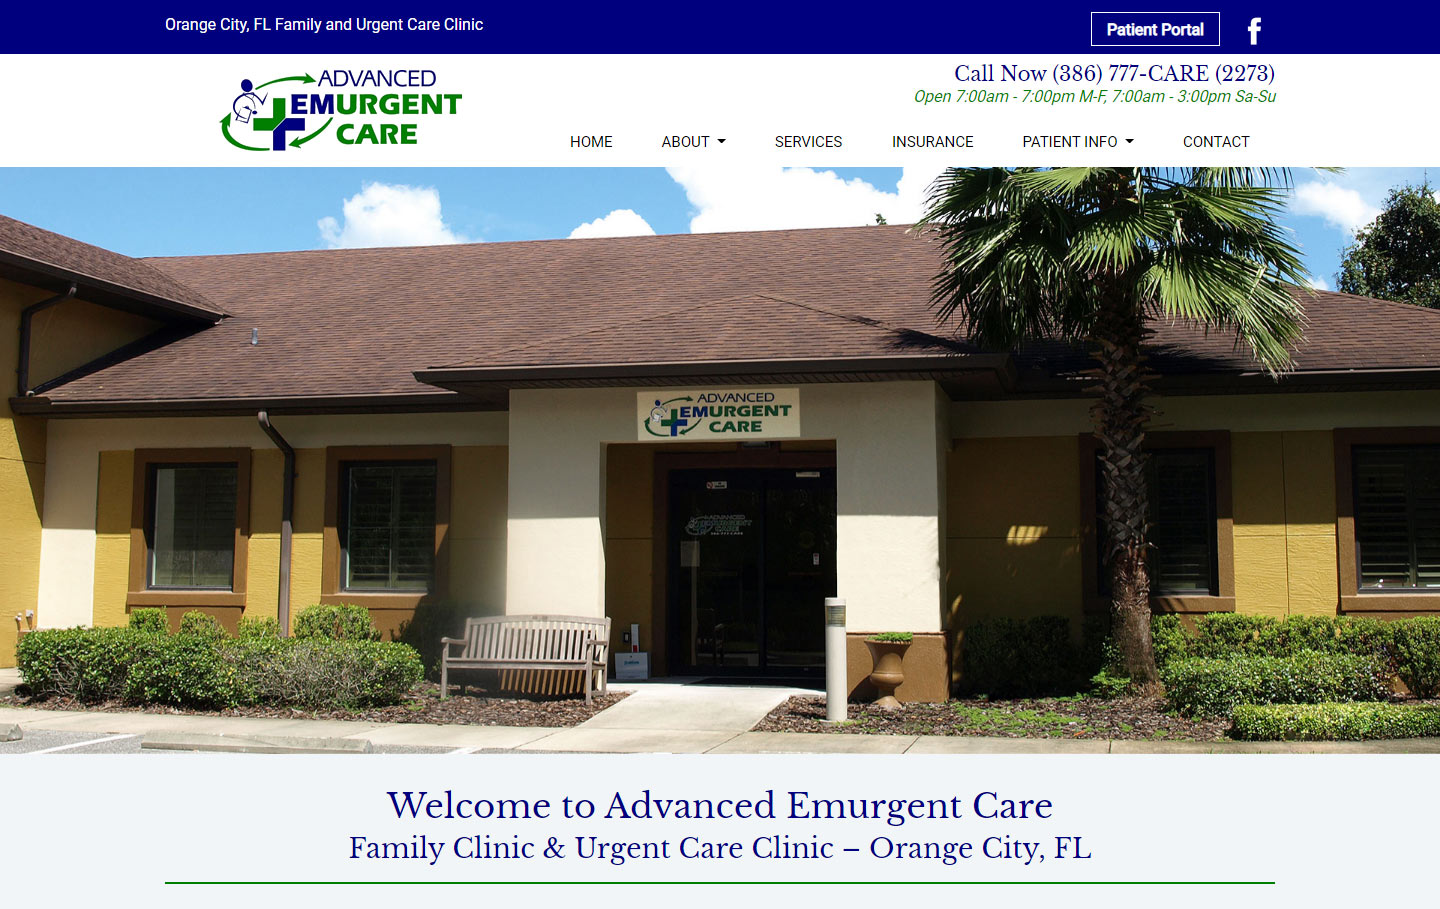 Advanced Emurgent Care